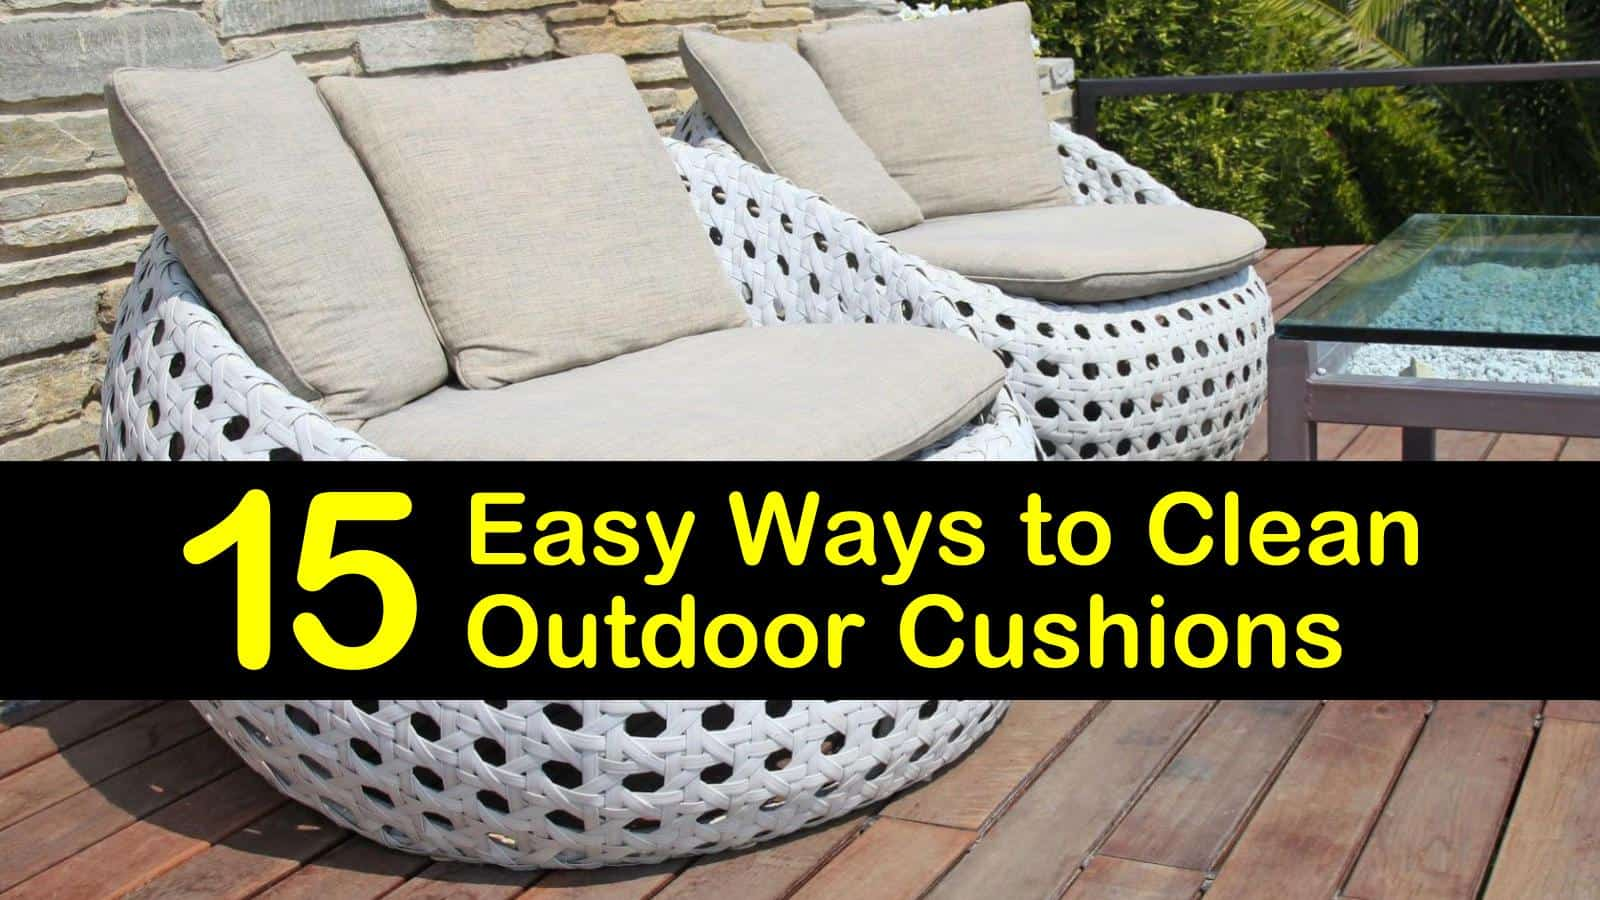 15 easy ways to clean outdoor cushions